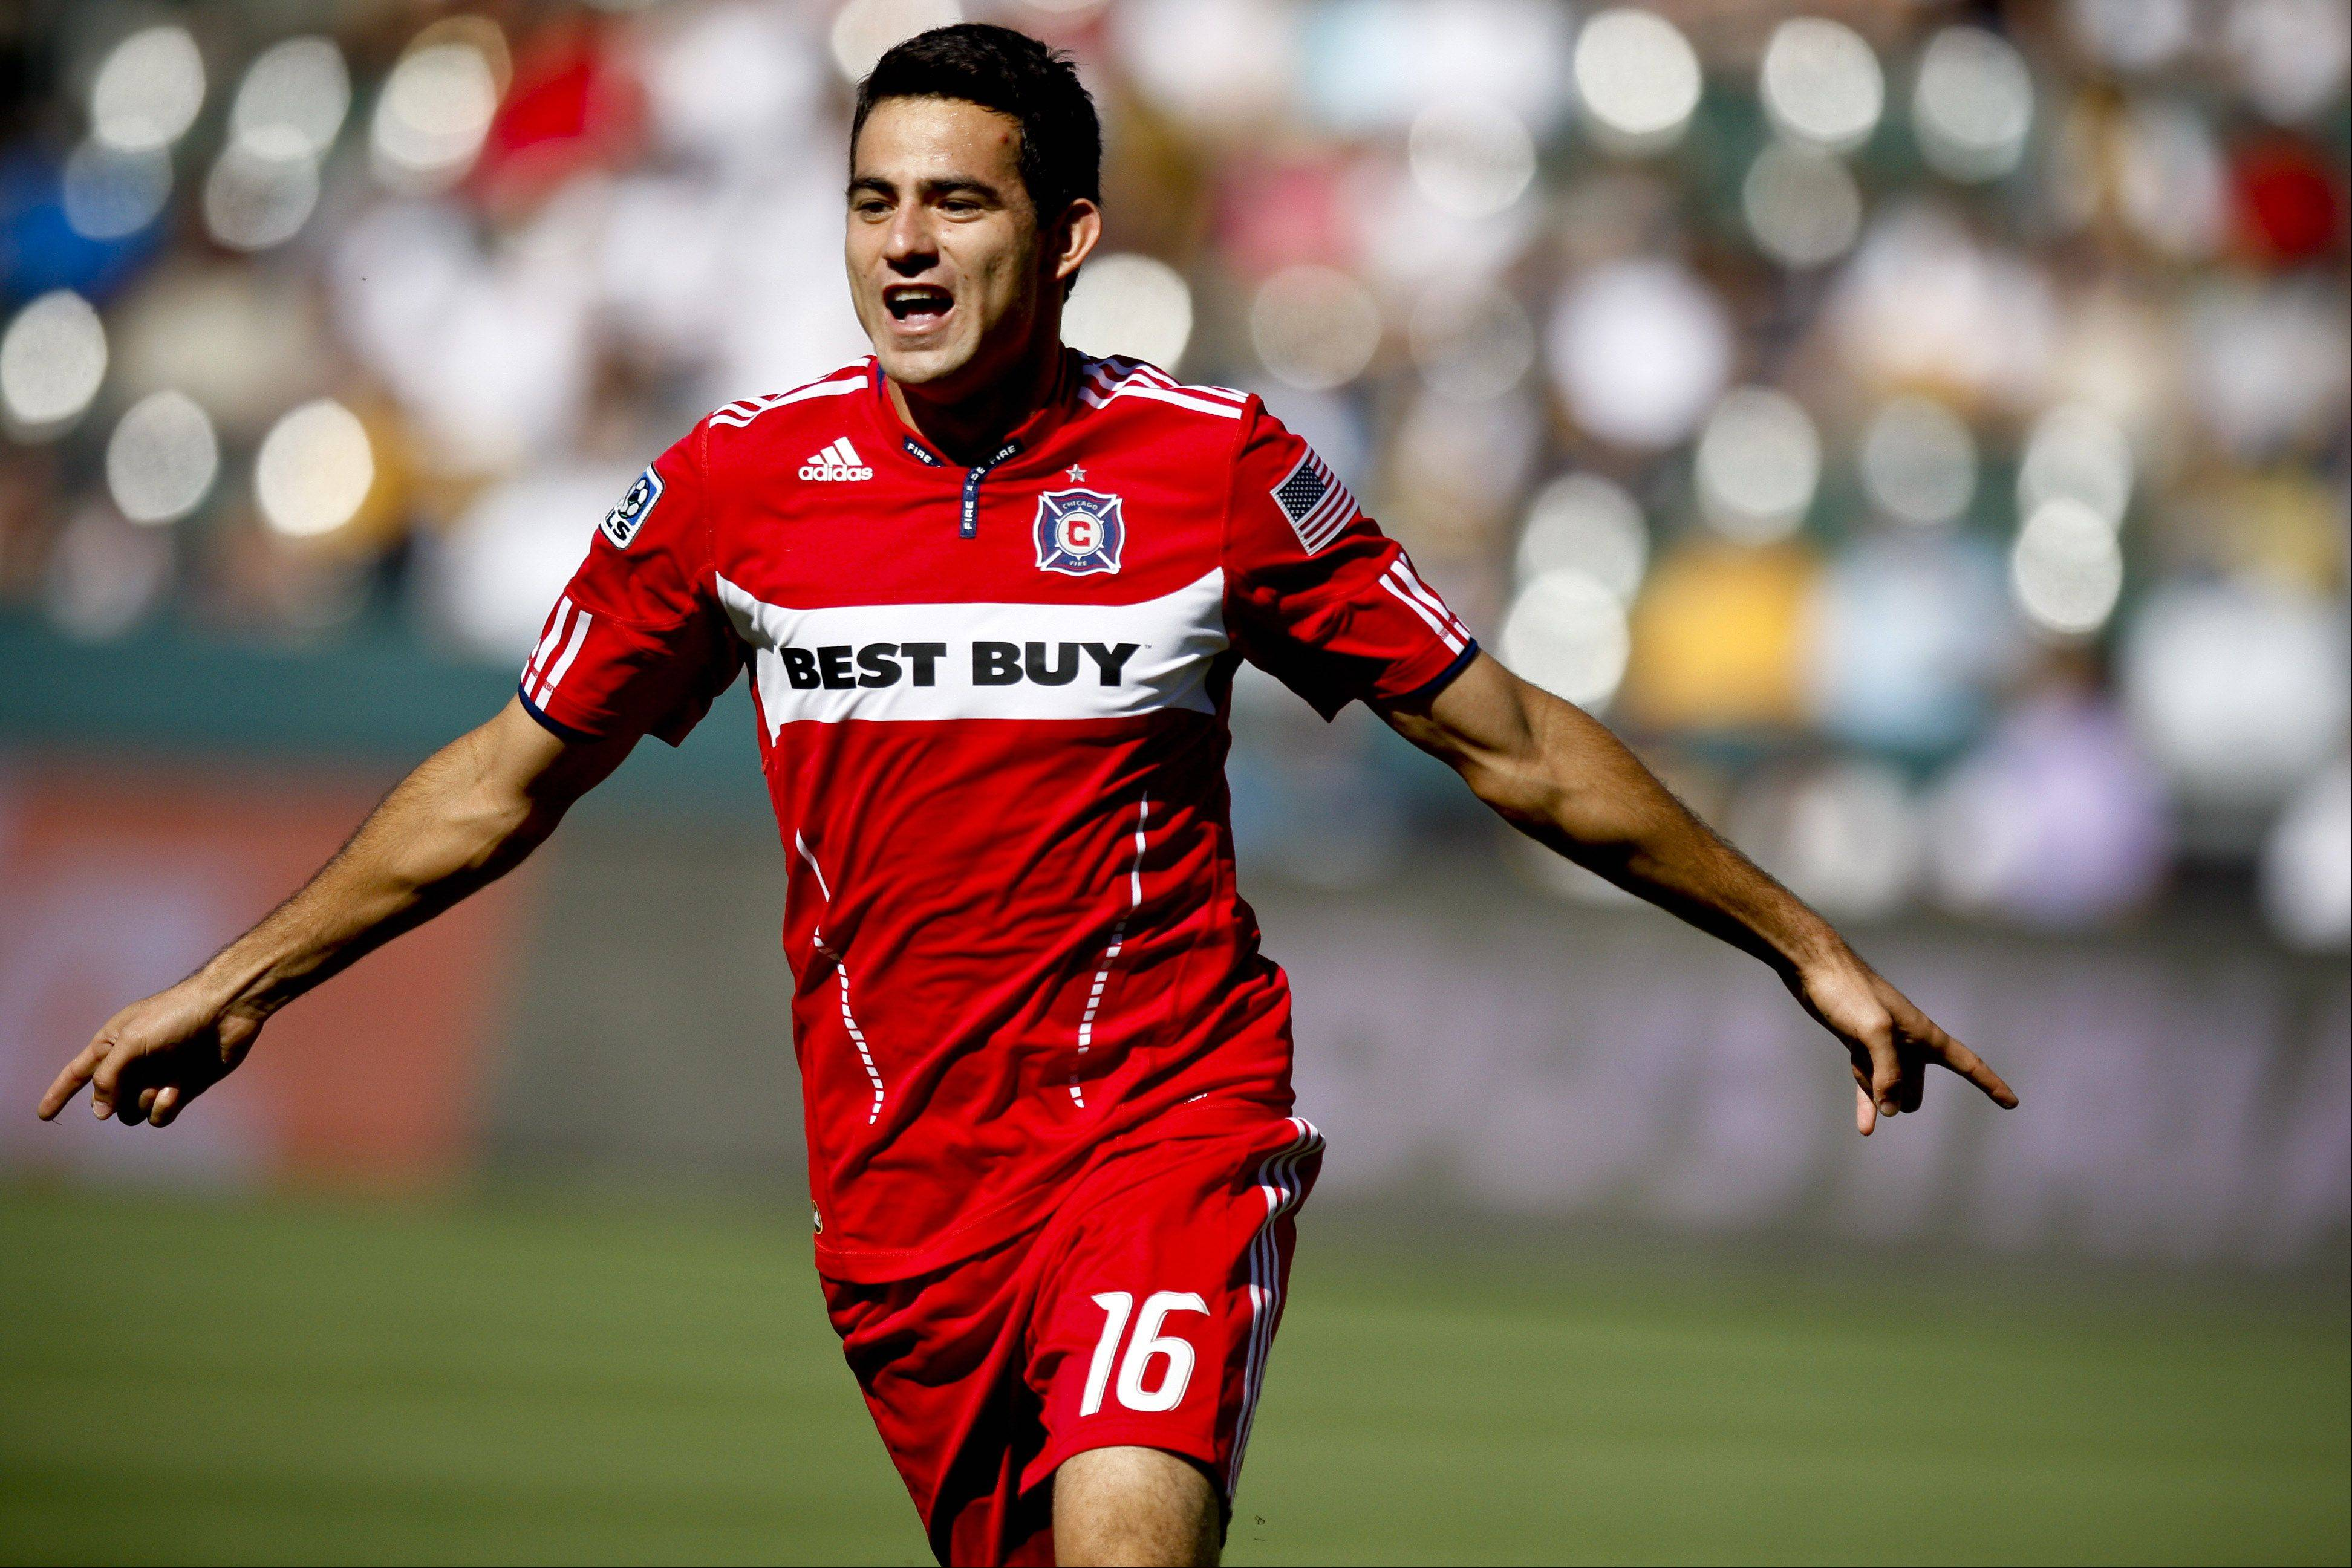 Chicago Fire midfielder Marco Pappa celebrates scoring against the Los Angeles Galaxy during the first half of their MLS soccer match, Sunday, Aug. 1, 2010, in Carson, Calif.